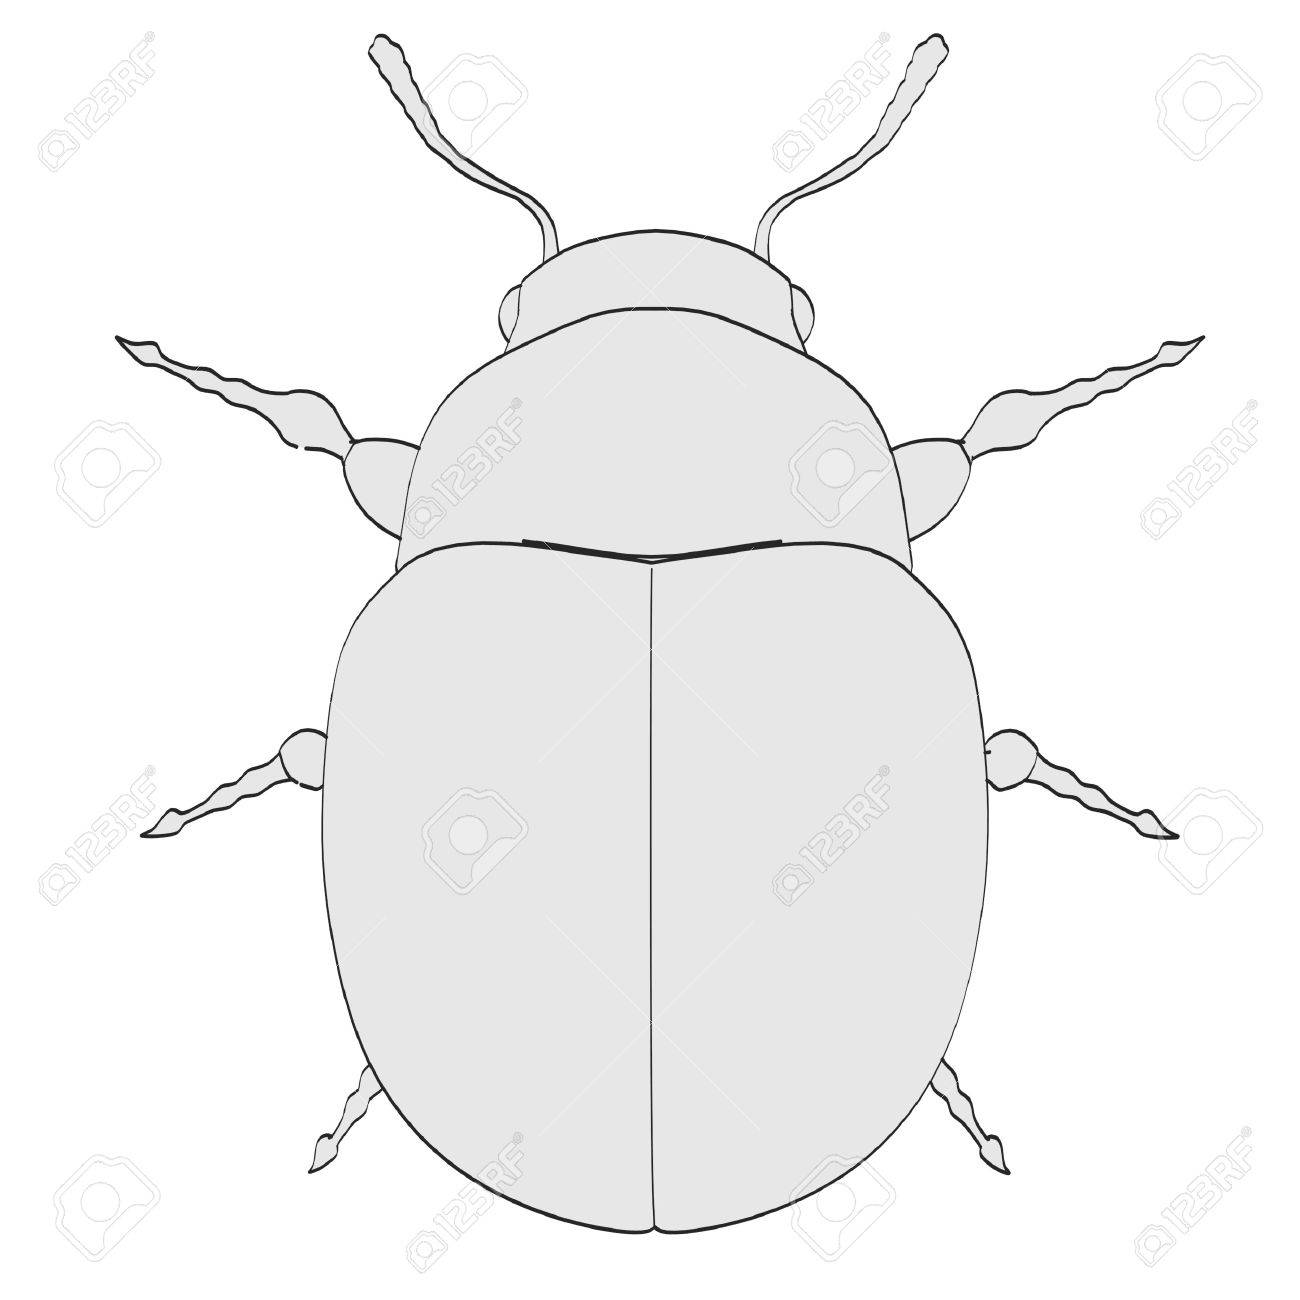 1300x1300 Cartoon Image Of Potato Beetle Stock Photo, Picture And Royalty